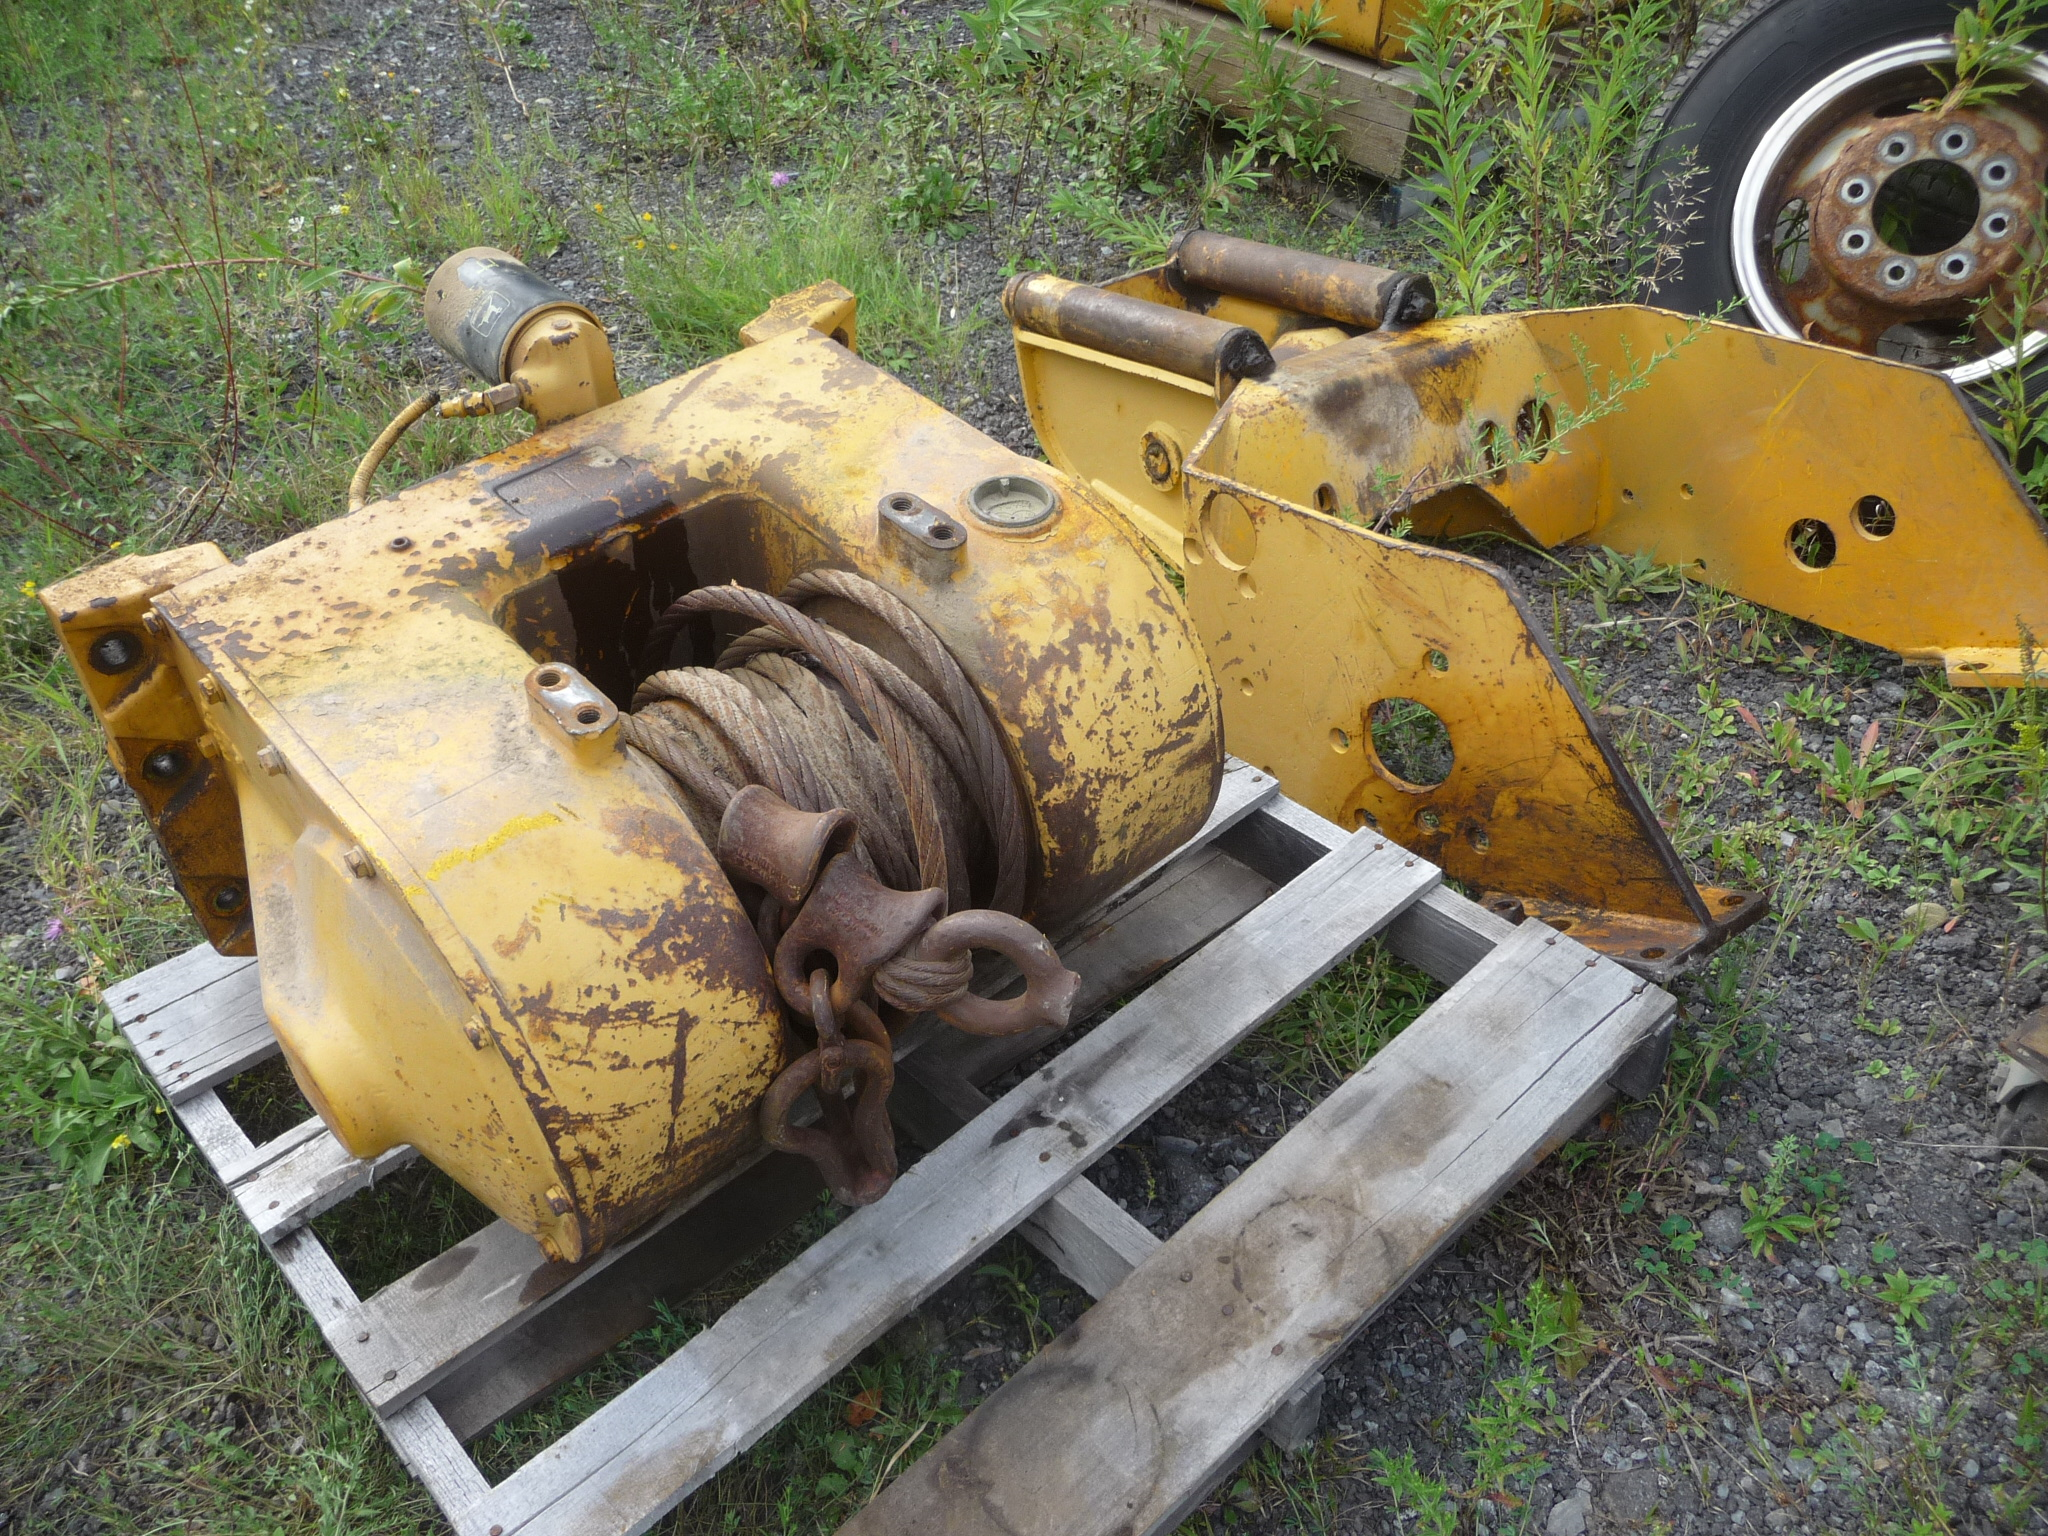 Construction Equipment Salvage Parts - Construction Parts HQ